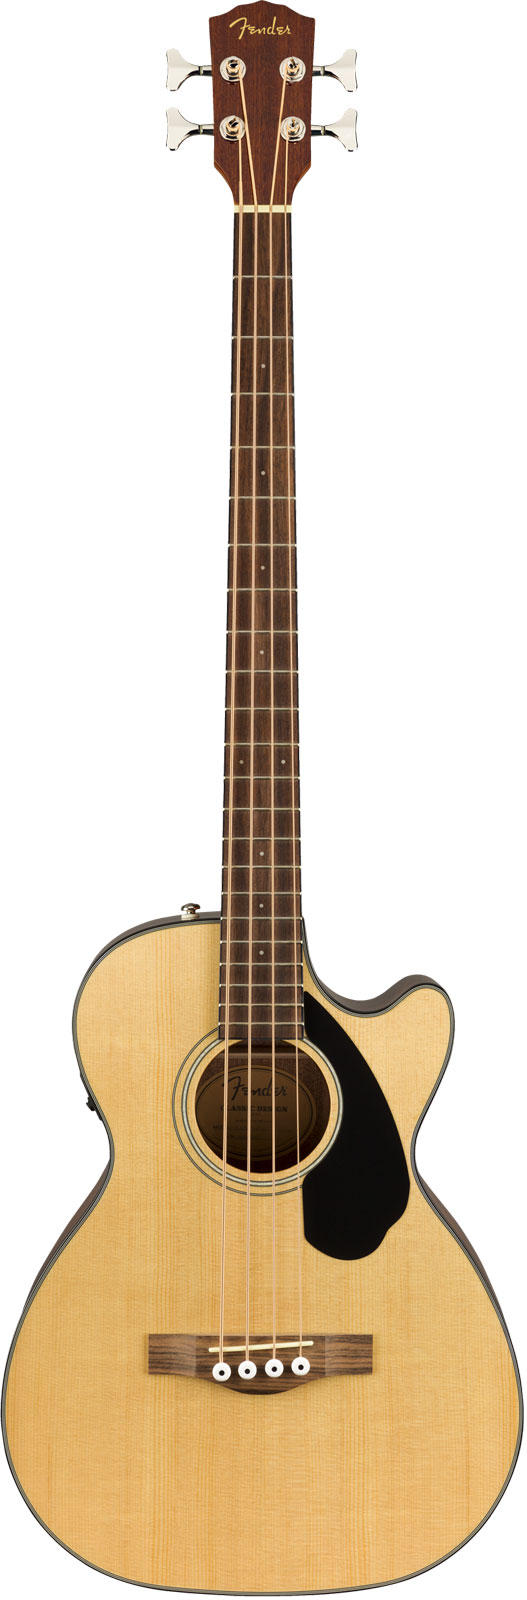 CB-60SCE BASS LRL NATURAL